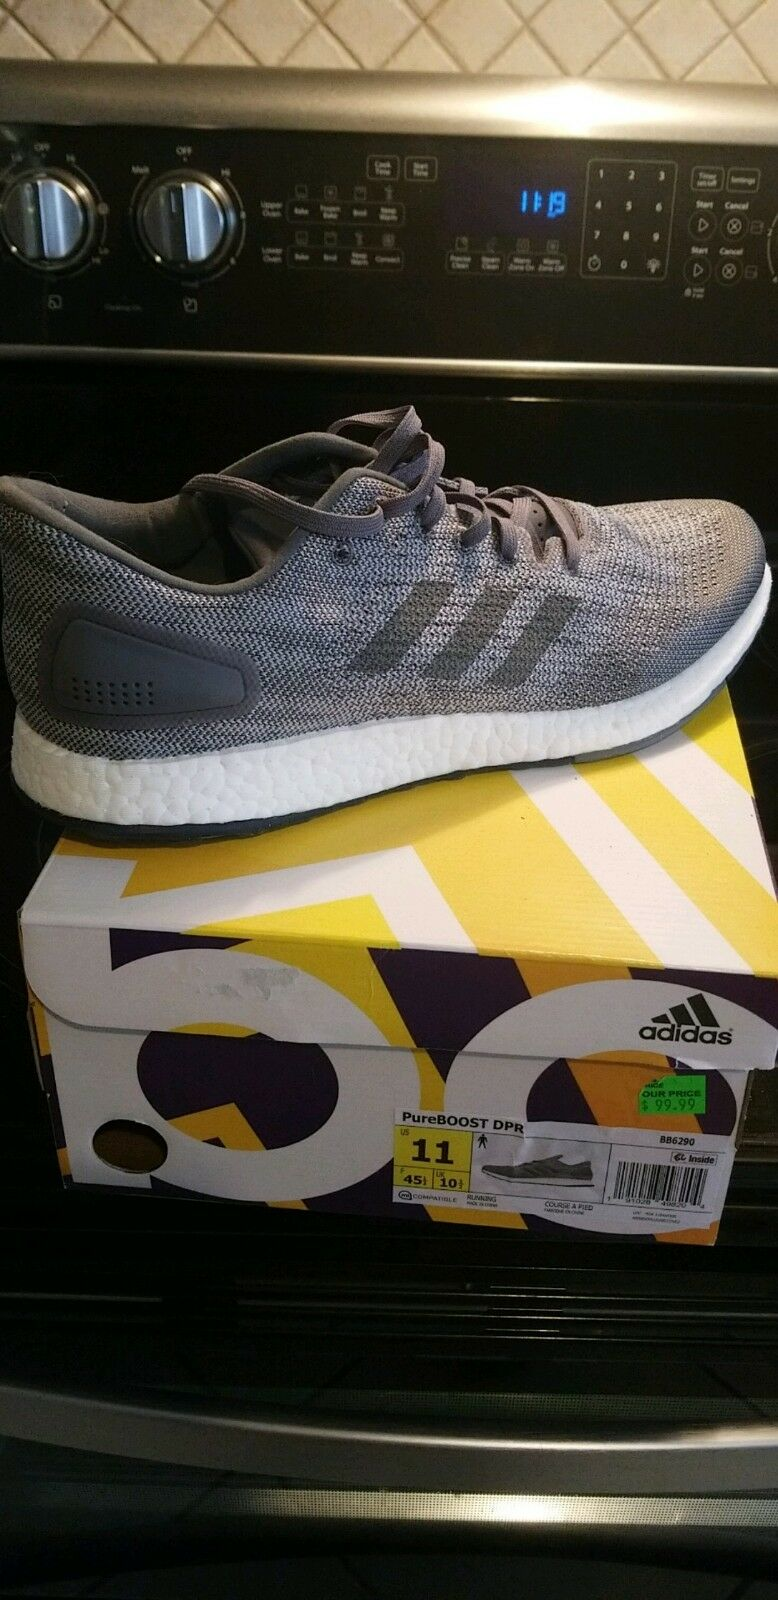 NWT NIB ADIDAS PUREBOOST DPR BB6290 MEN'S SZ 11 GREY WHITE